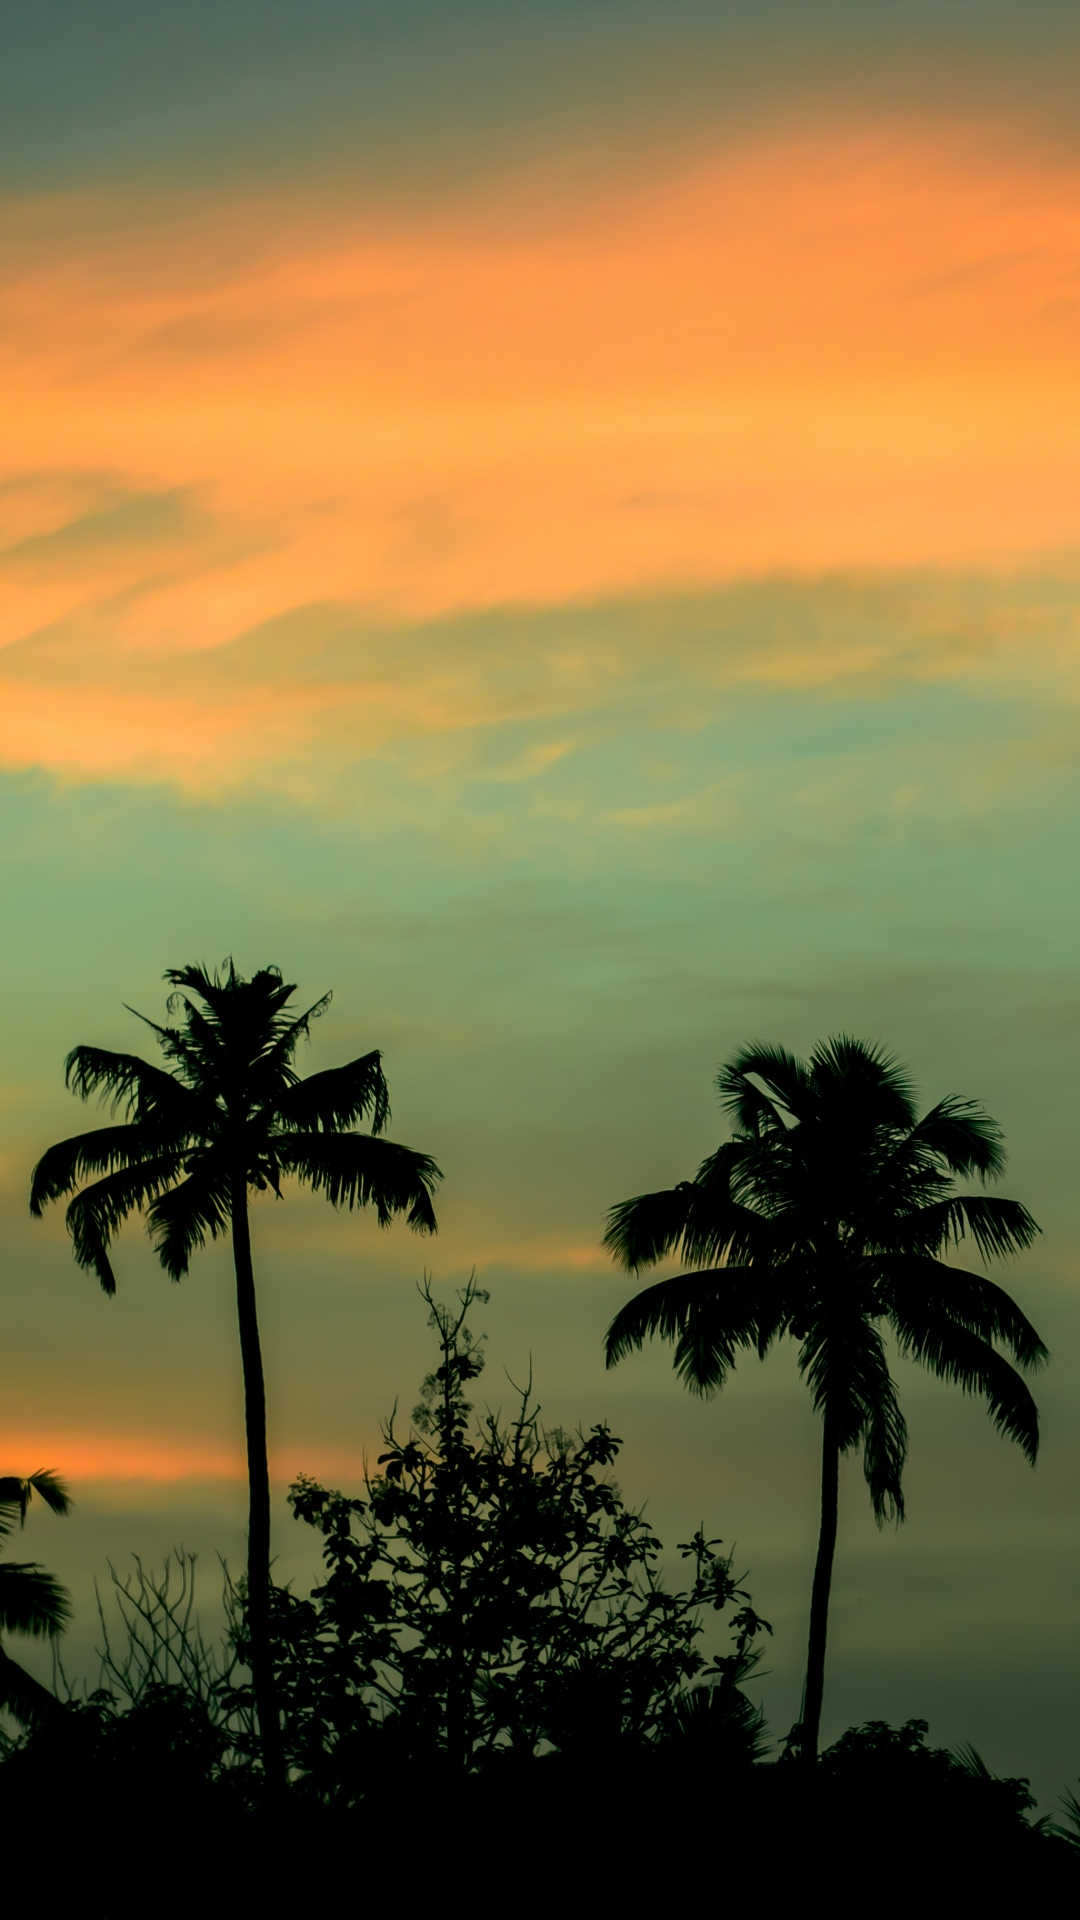 iphone wallpaper palms sunset sky Nature